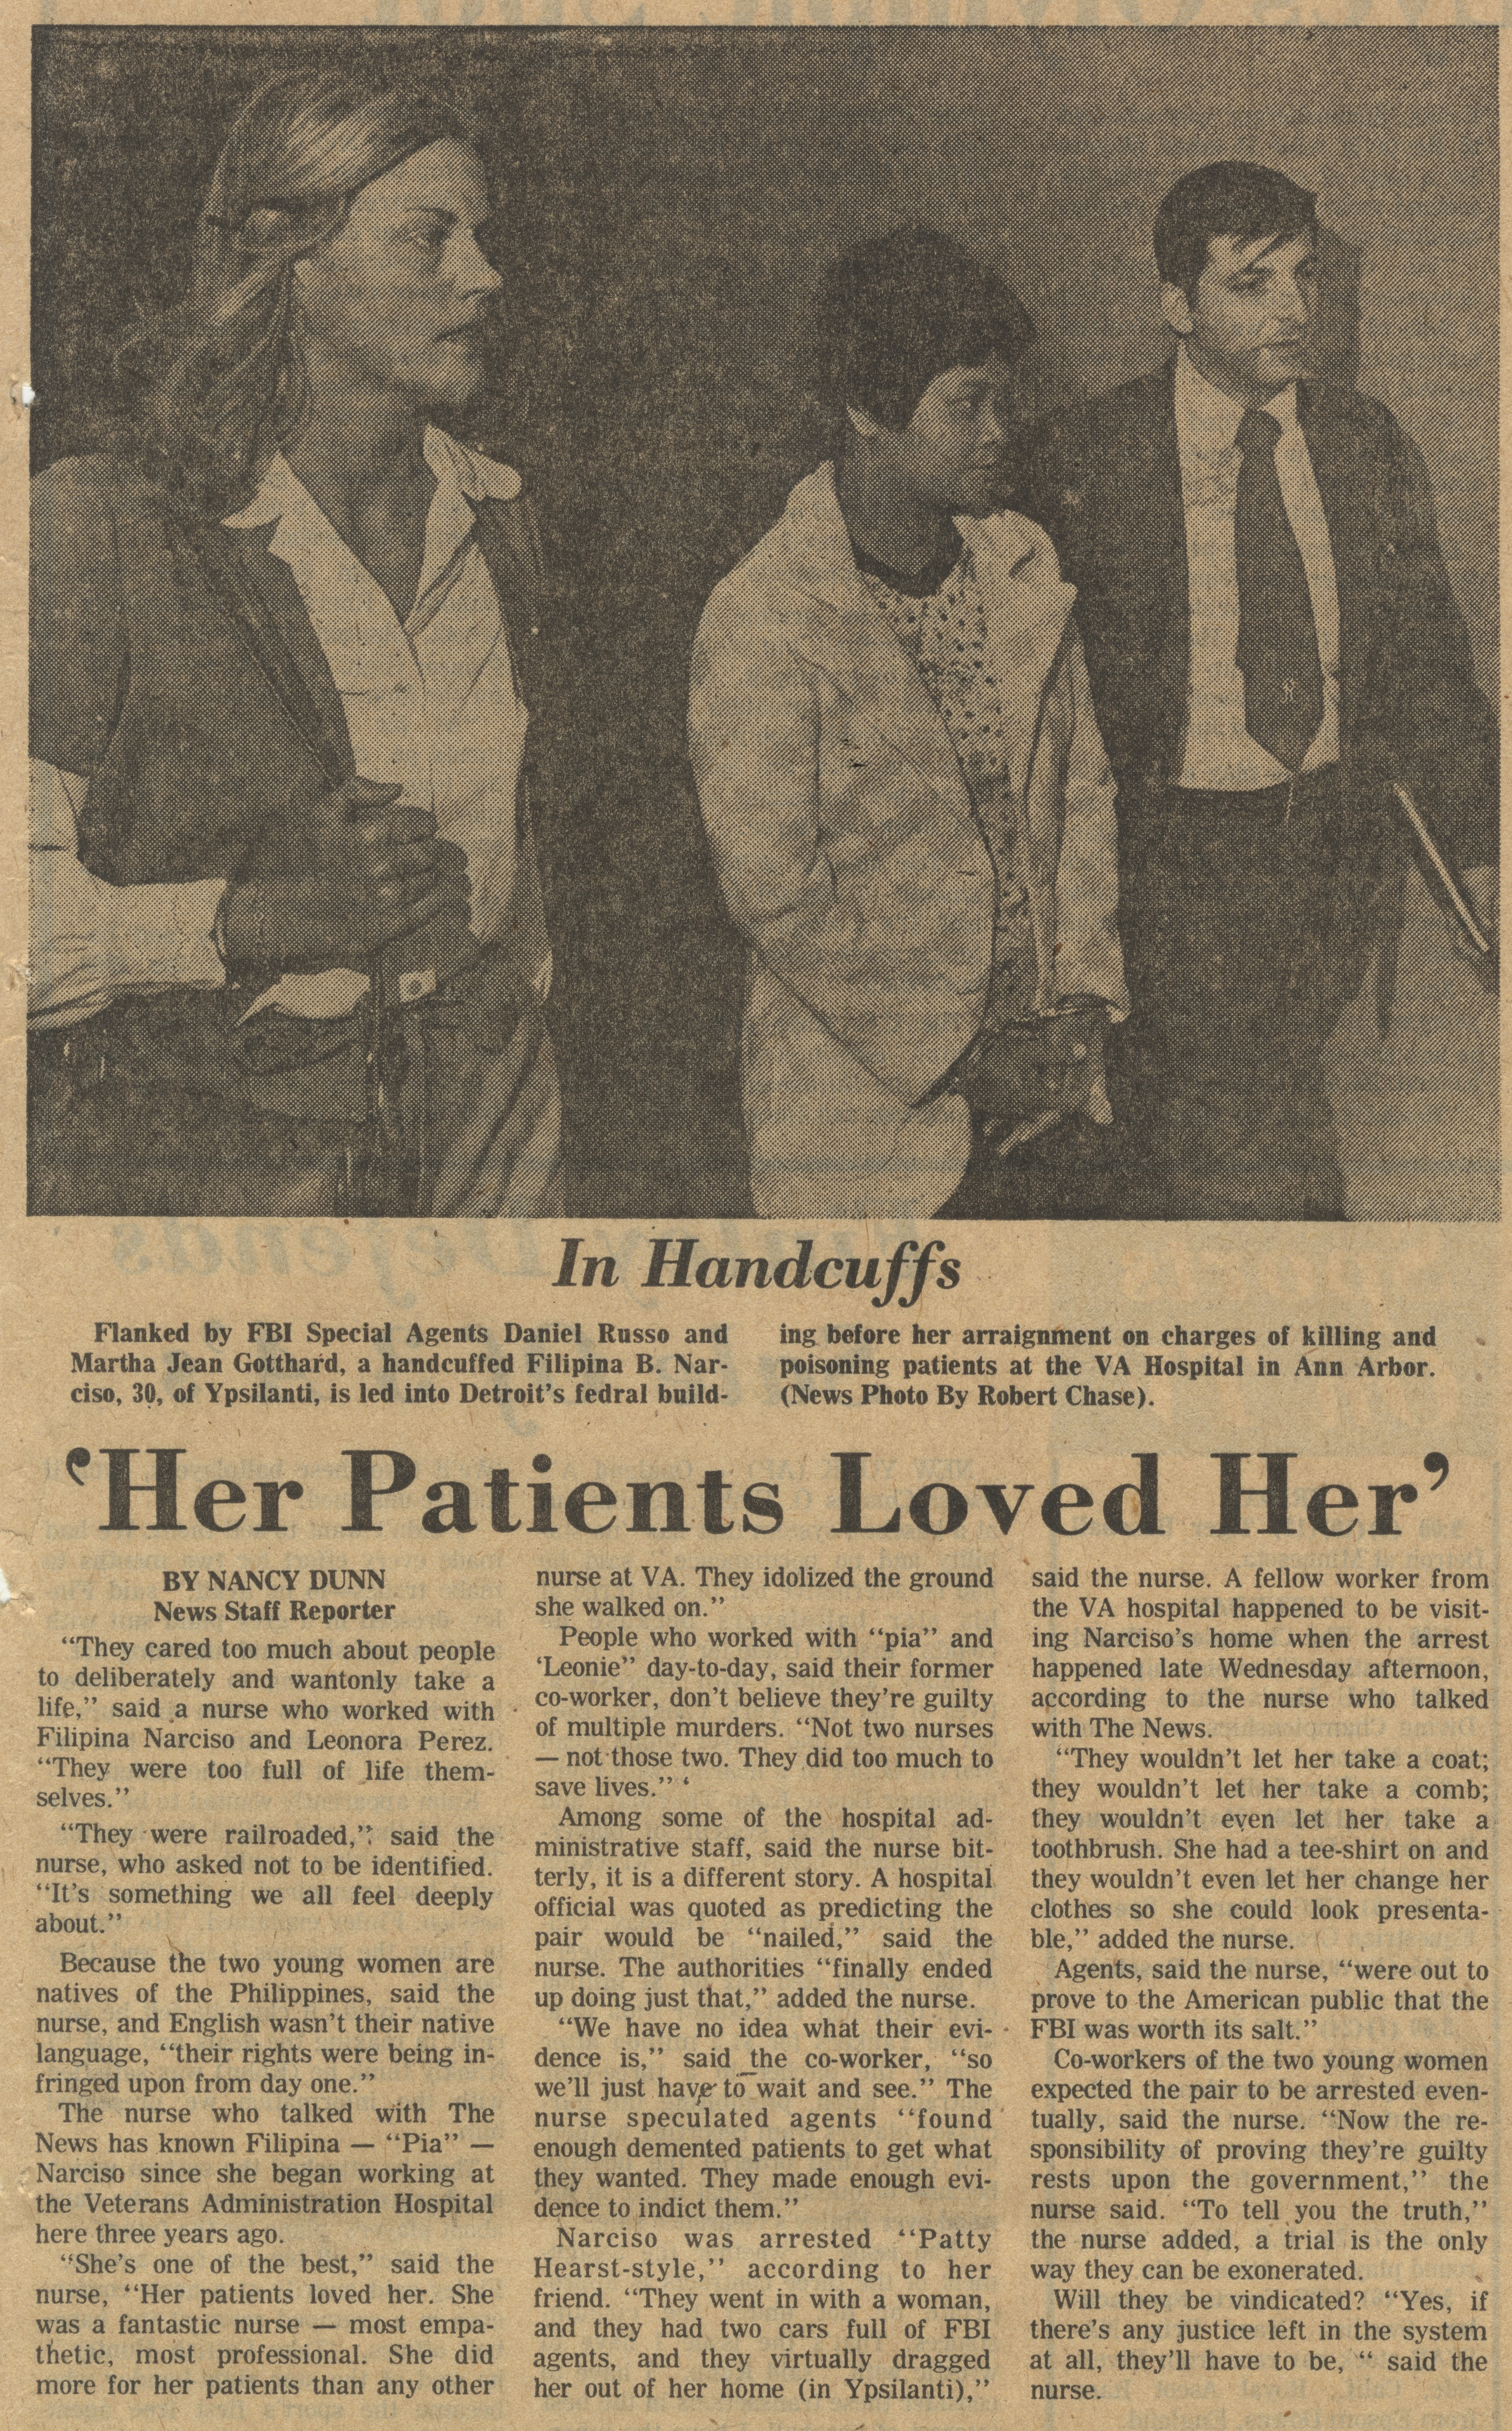 'Her Patients Loved Her' image